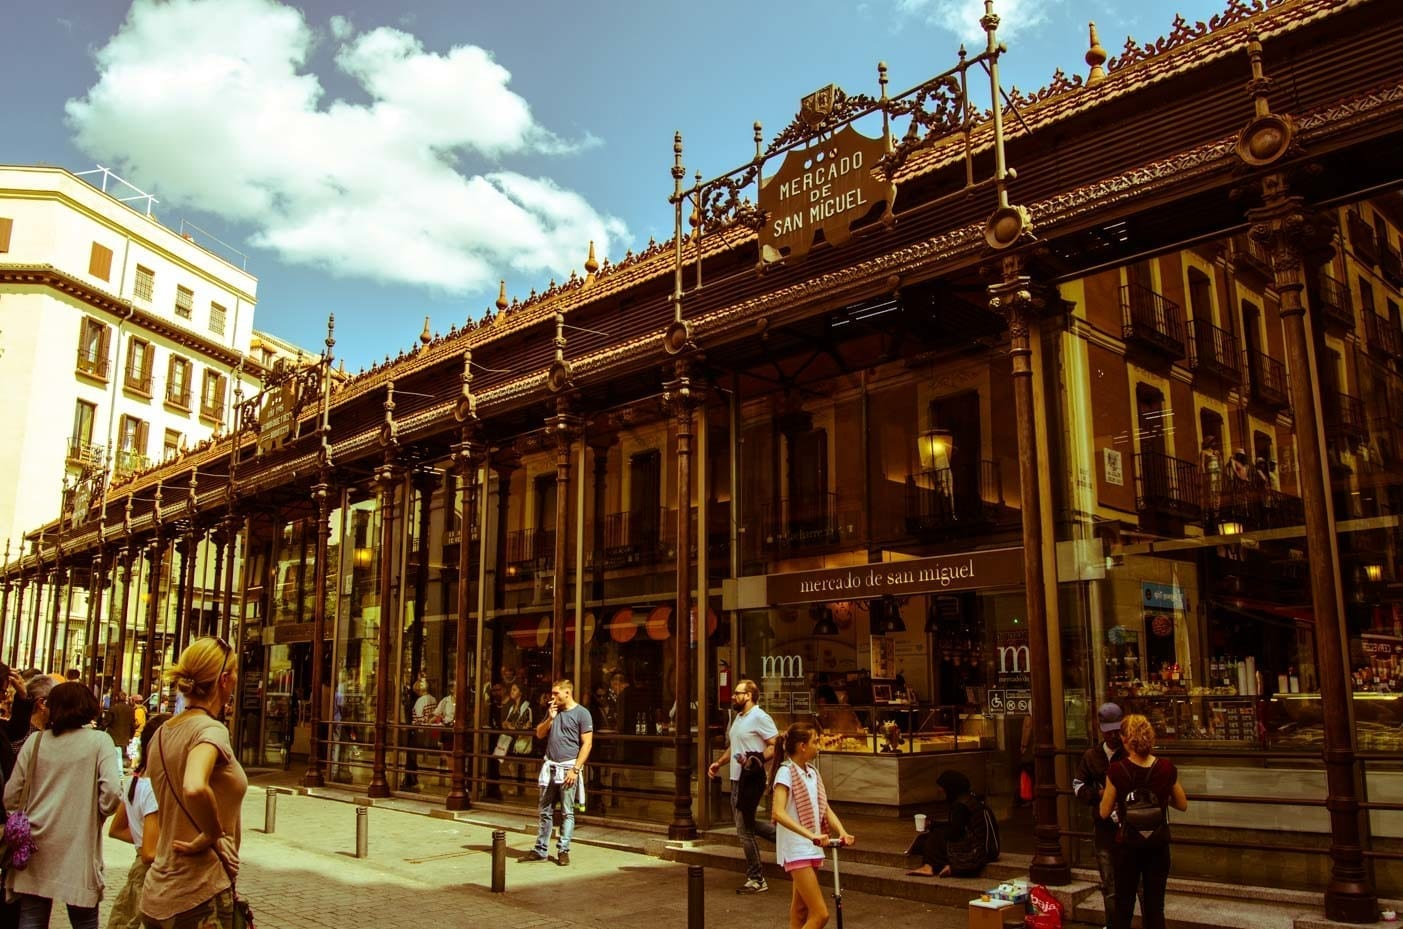 San Miguel market in Madrid for the bets tapas